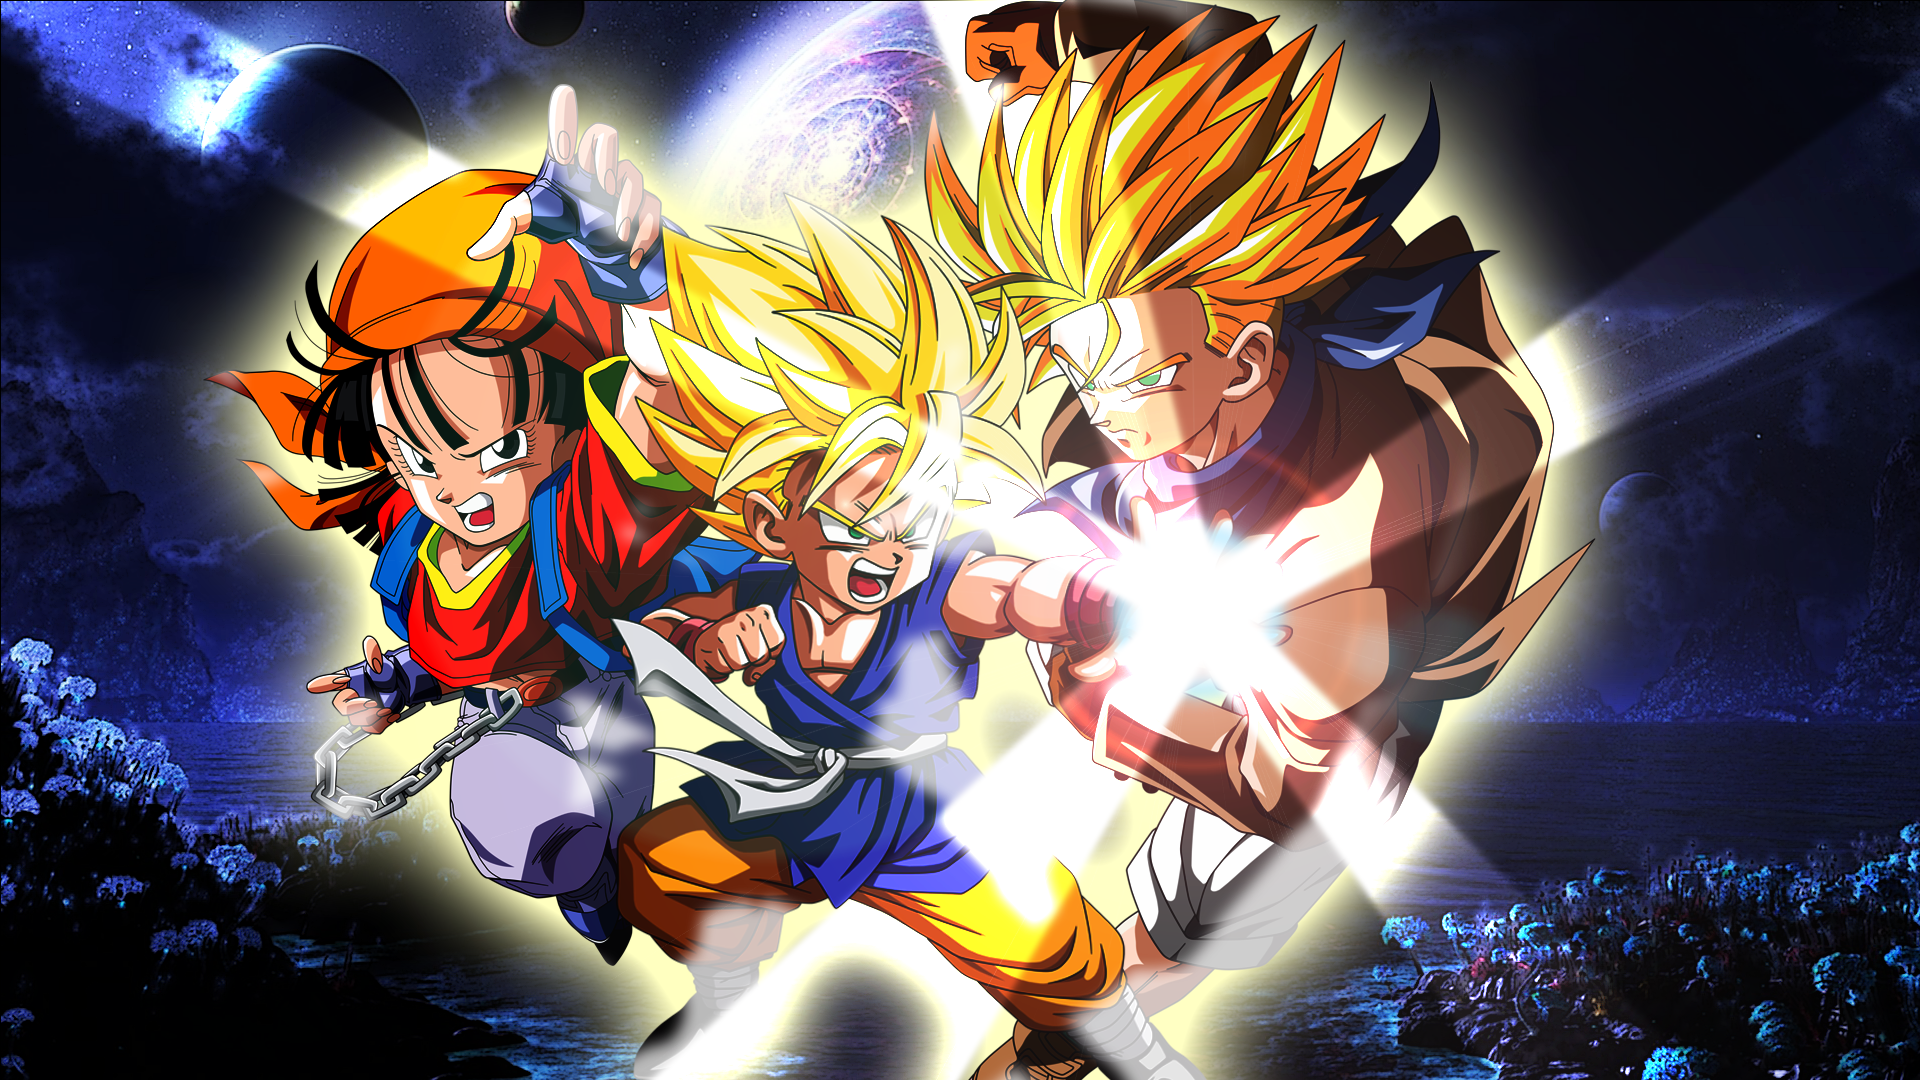 Wallpaper Dragon Ball Gt 1920x1080